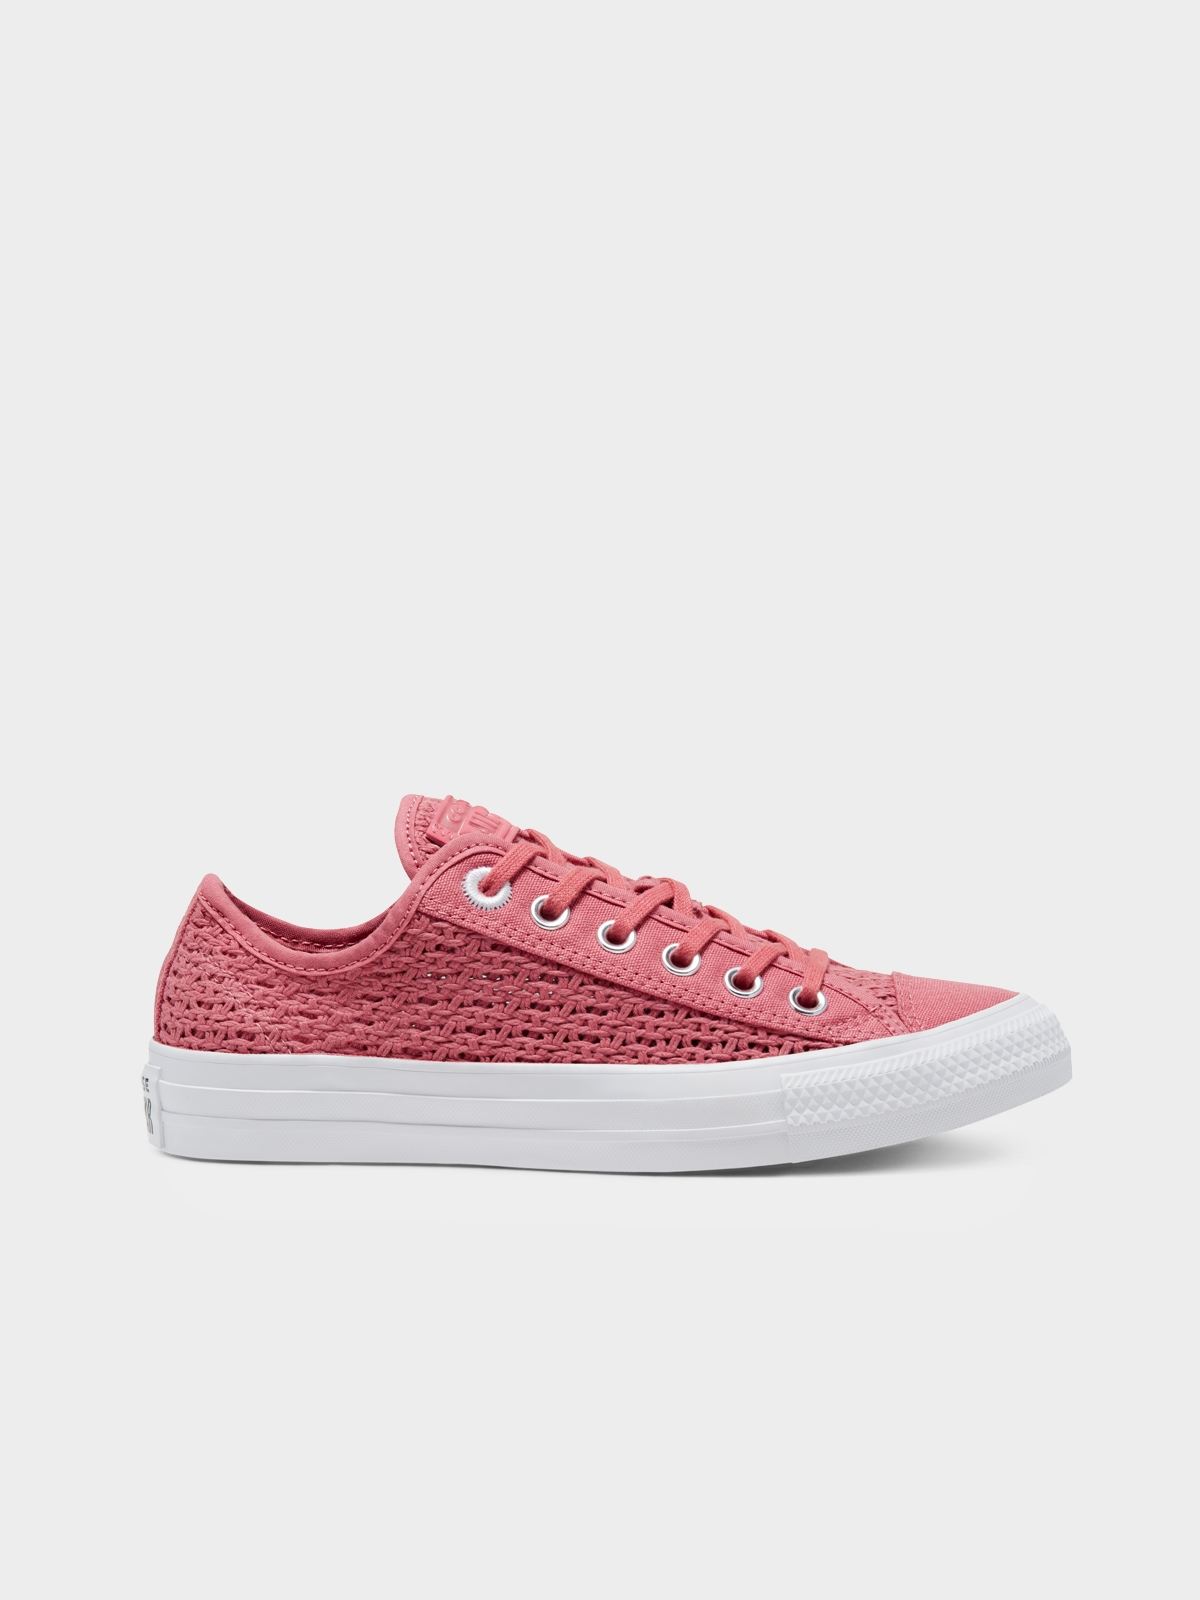 Converse Chuck Taylor All Star Shimmer Sneakers Pink